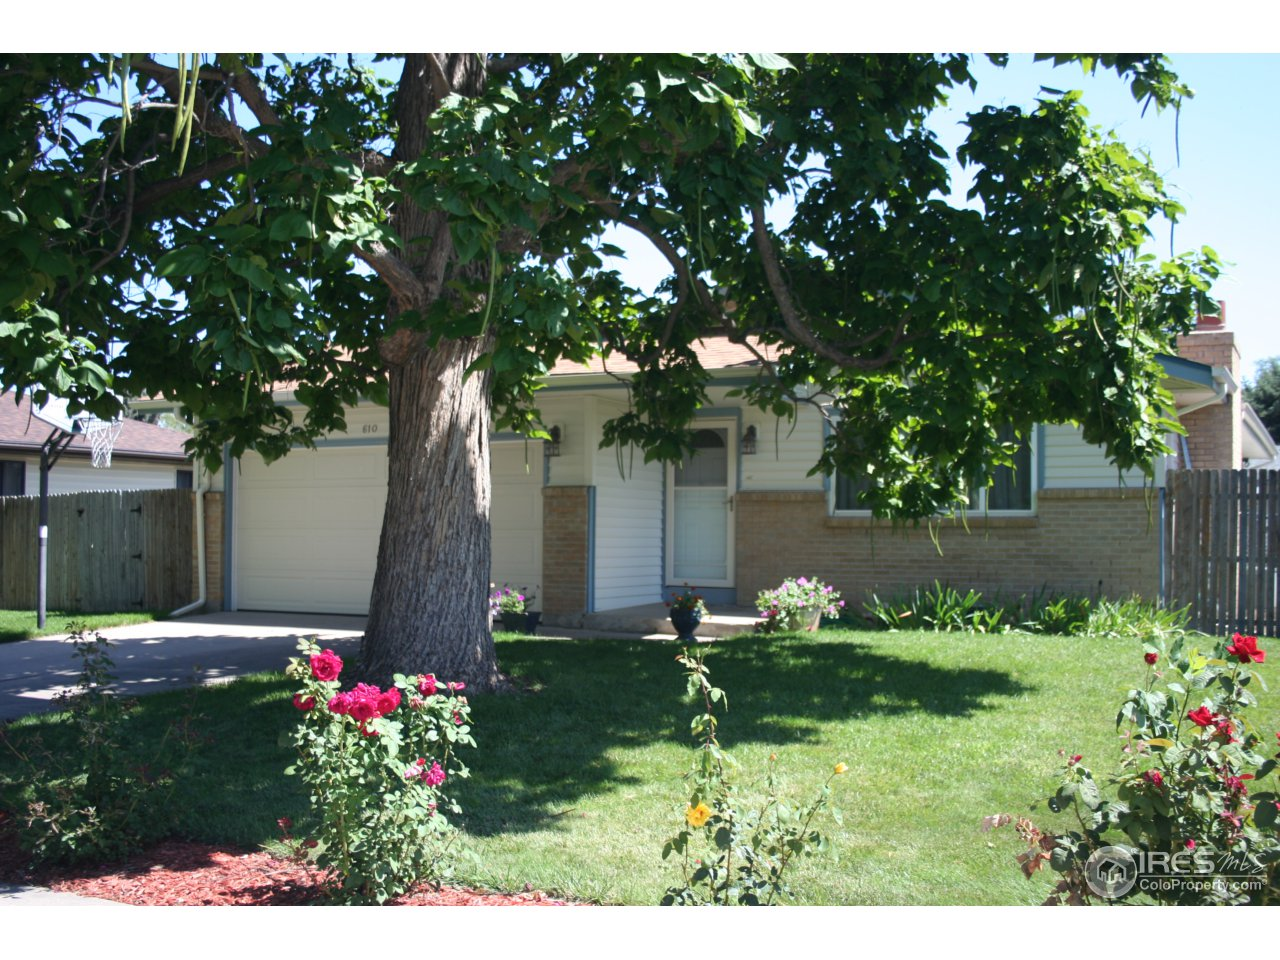 610 38th Ave, Greeley CO 80634